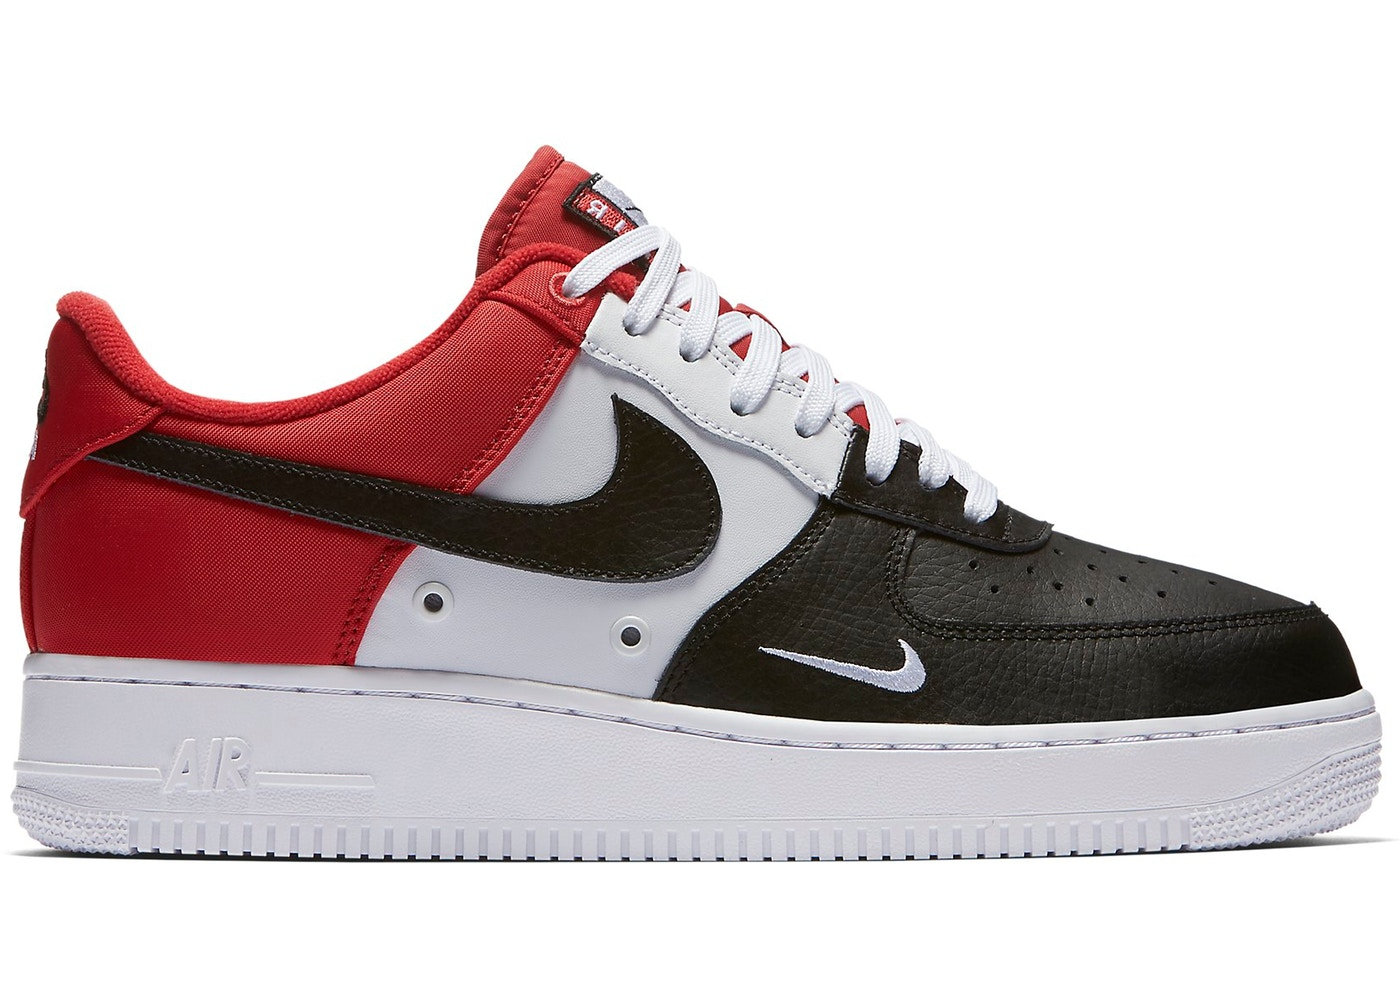 Nike Air Force 1 Low Black Toe Mini Swoosh 823511 603